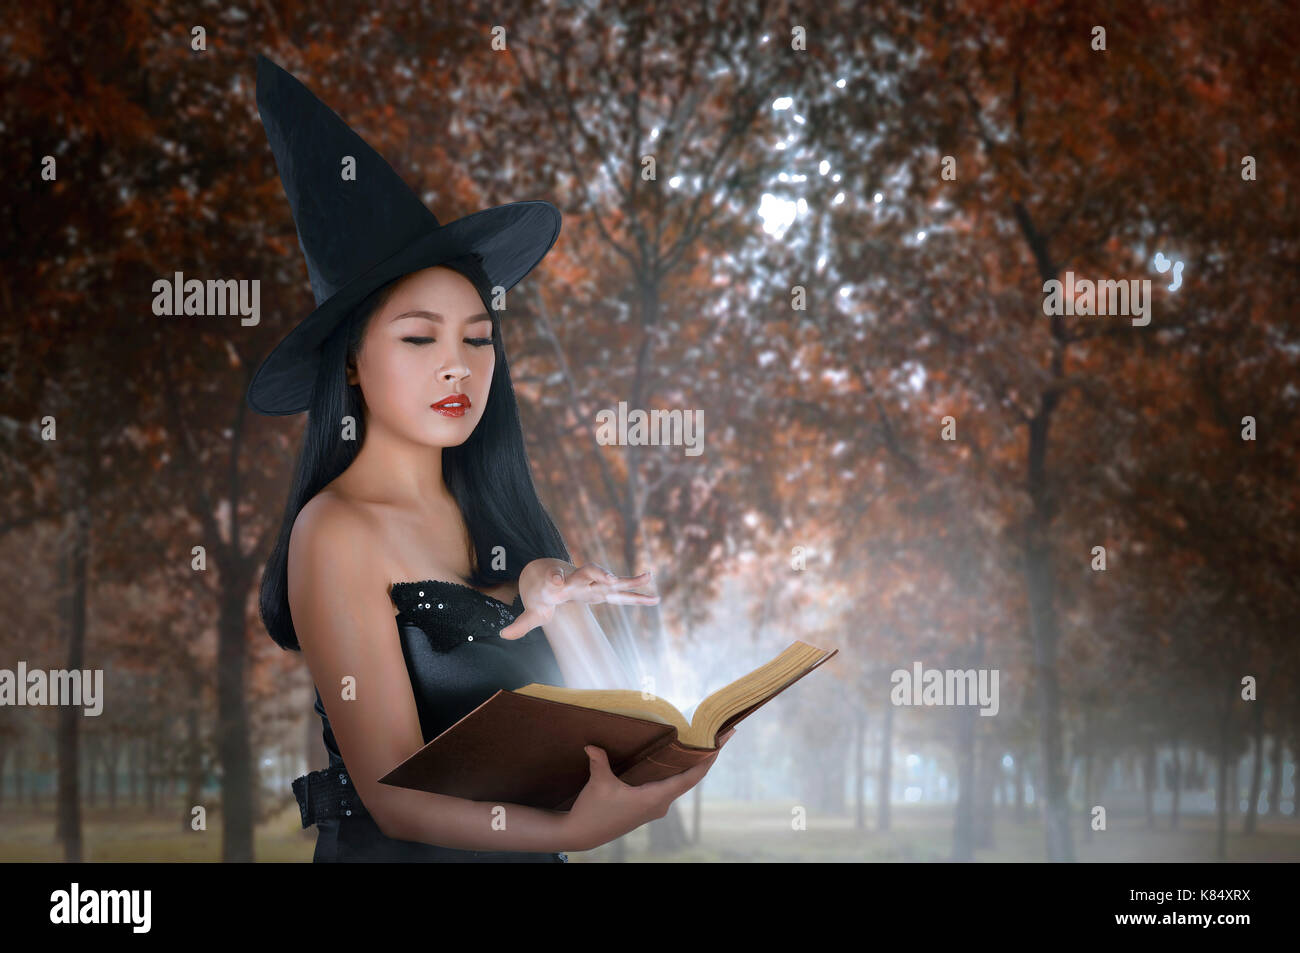 Young asian woman in witches costume holding spell book on the forest Stock Photo